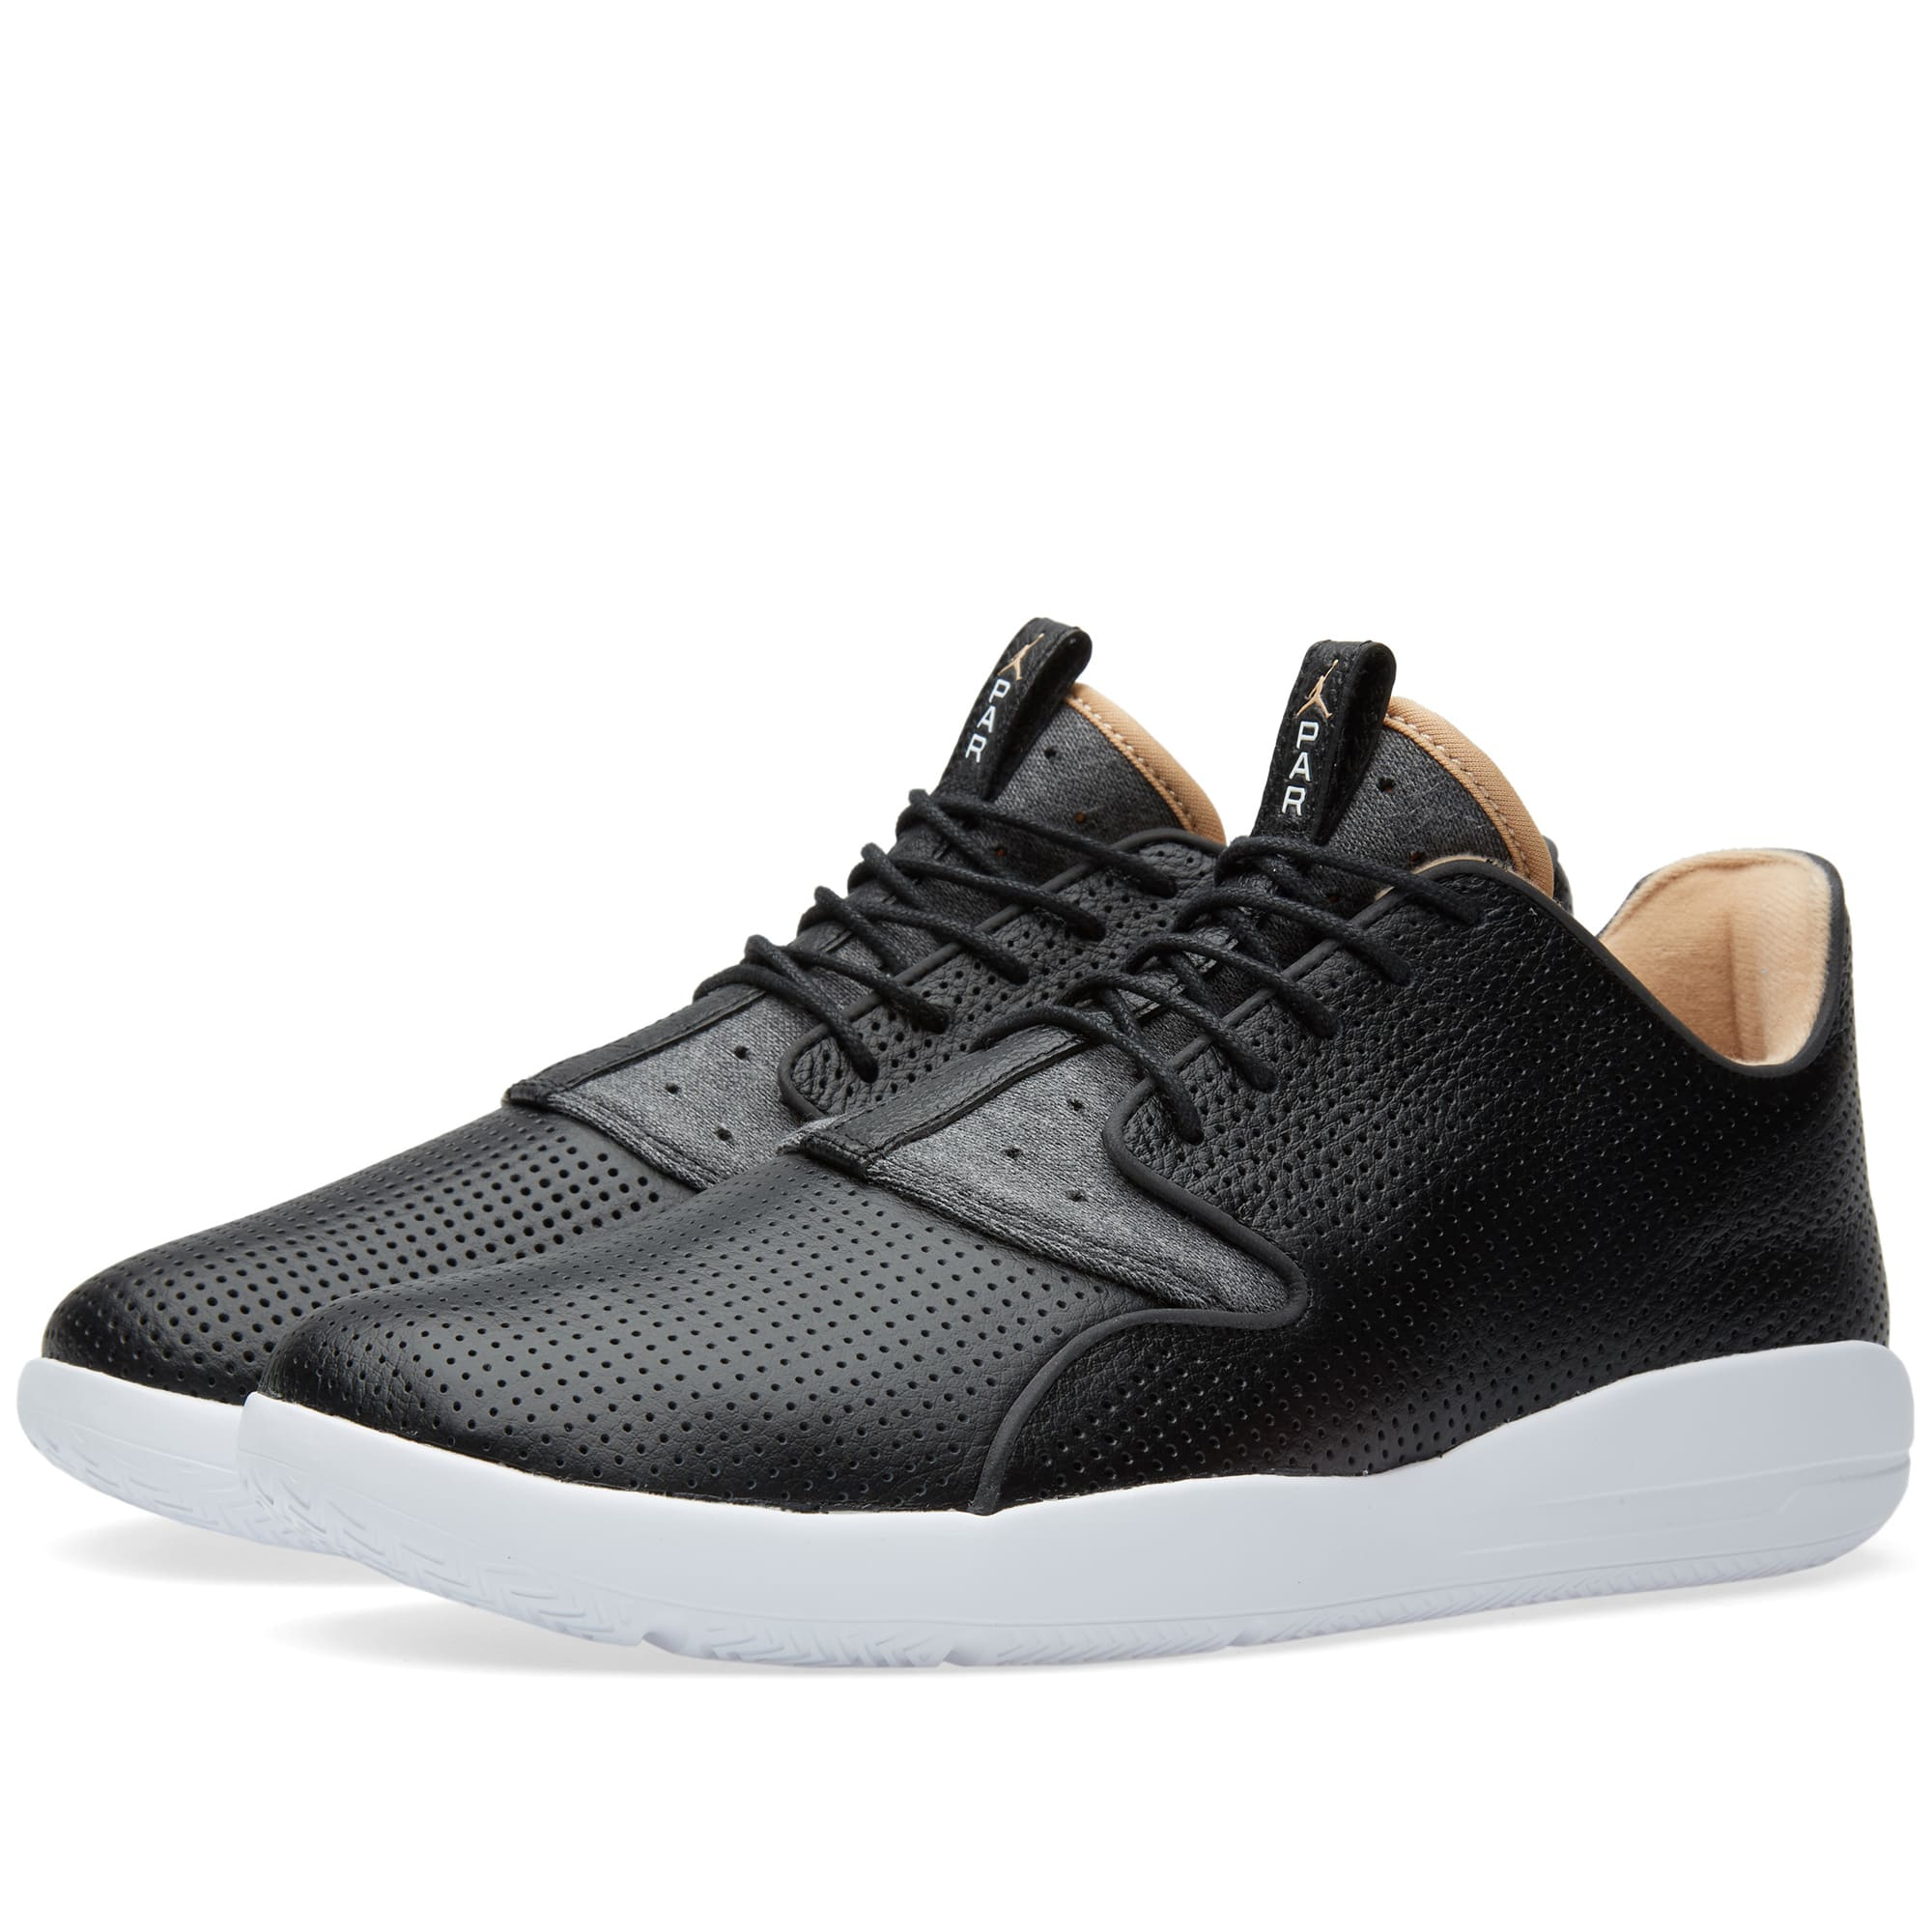 new product 96e03 640f6 Nike Jordan Eclipse Leather 'Paris'